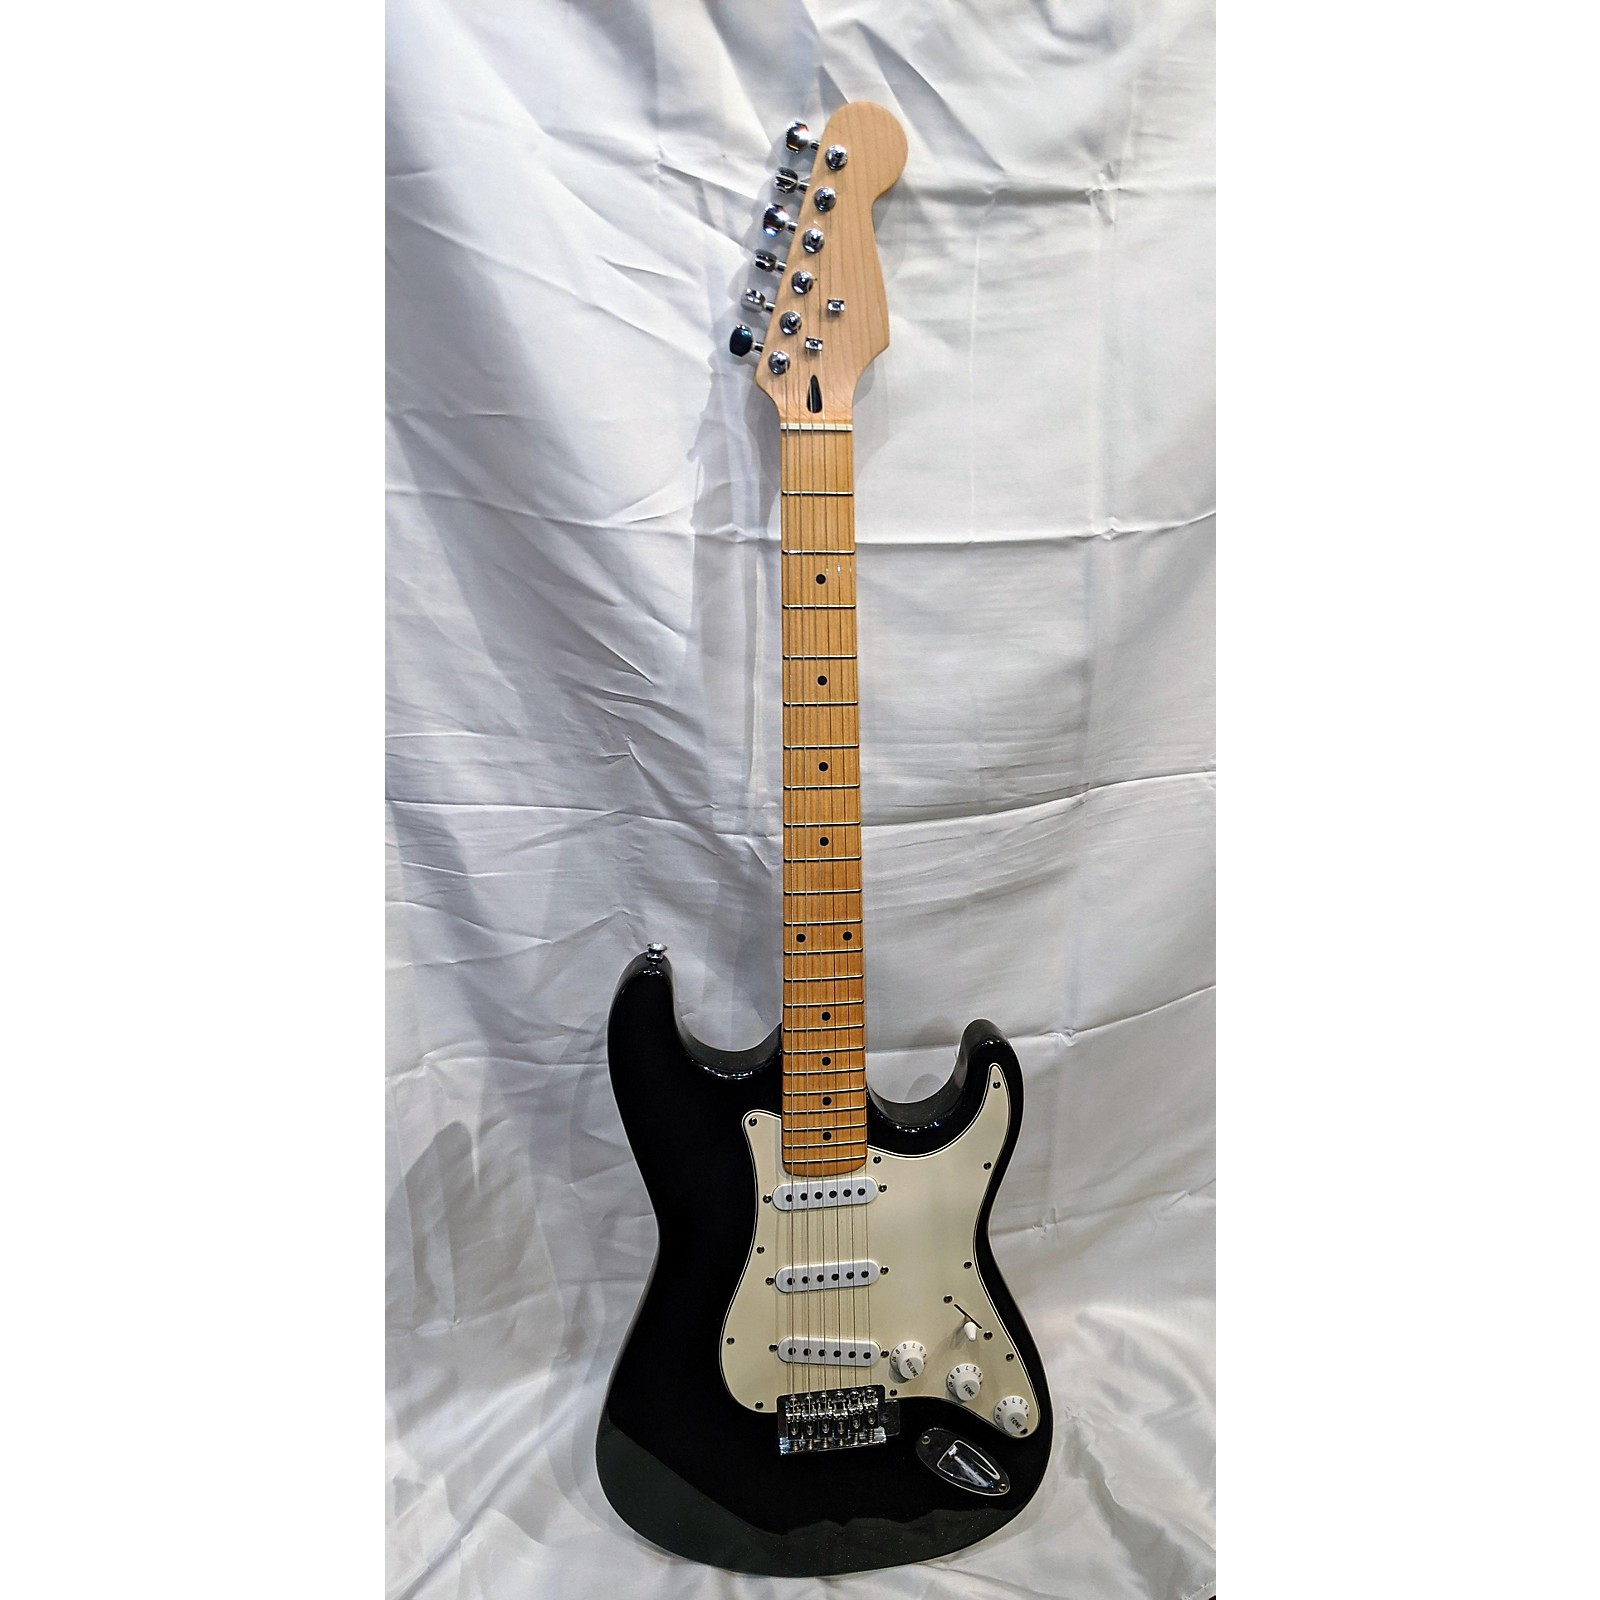 In Store Used Used Used Partscaster Black Solid Body Electric Guitar